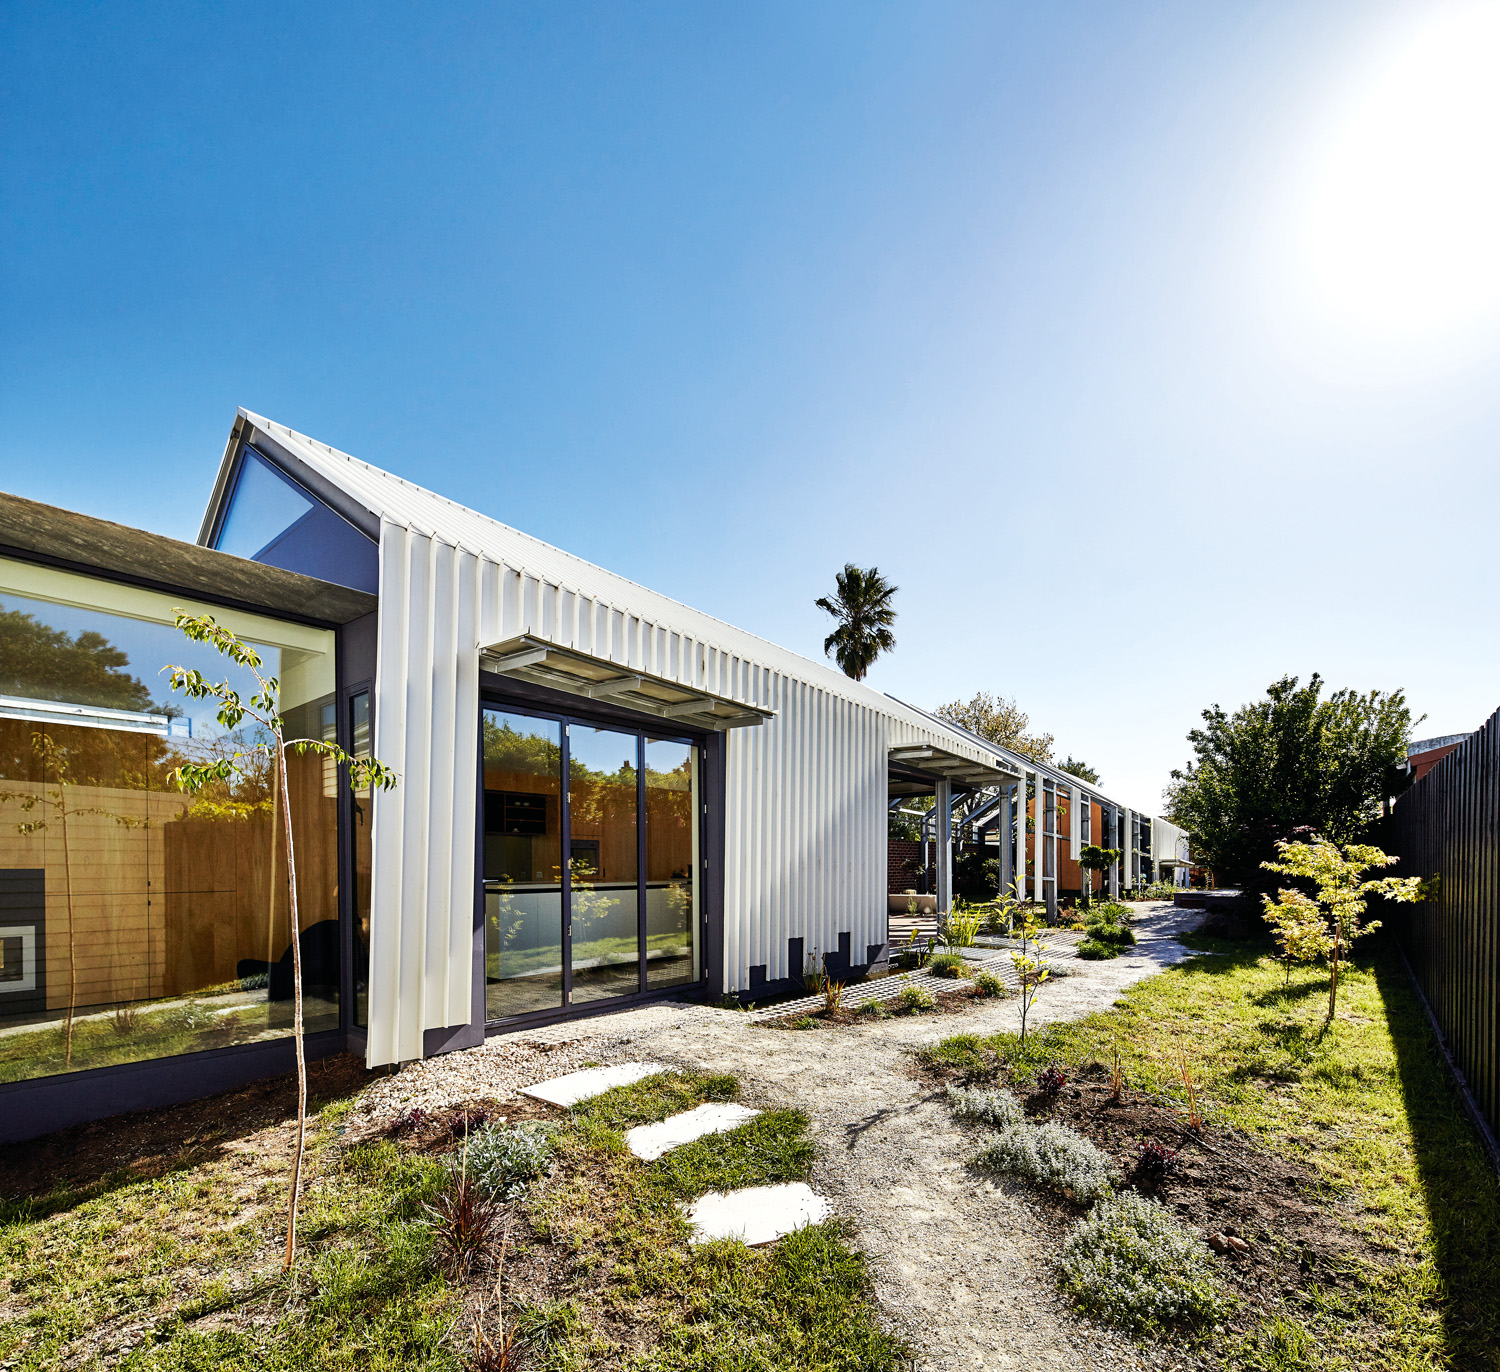 Grand designs australia inside out house completehome for Grand home designs